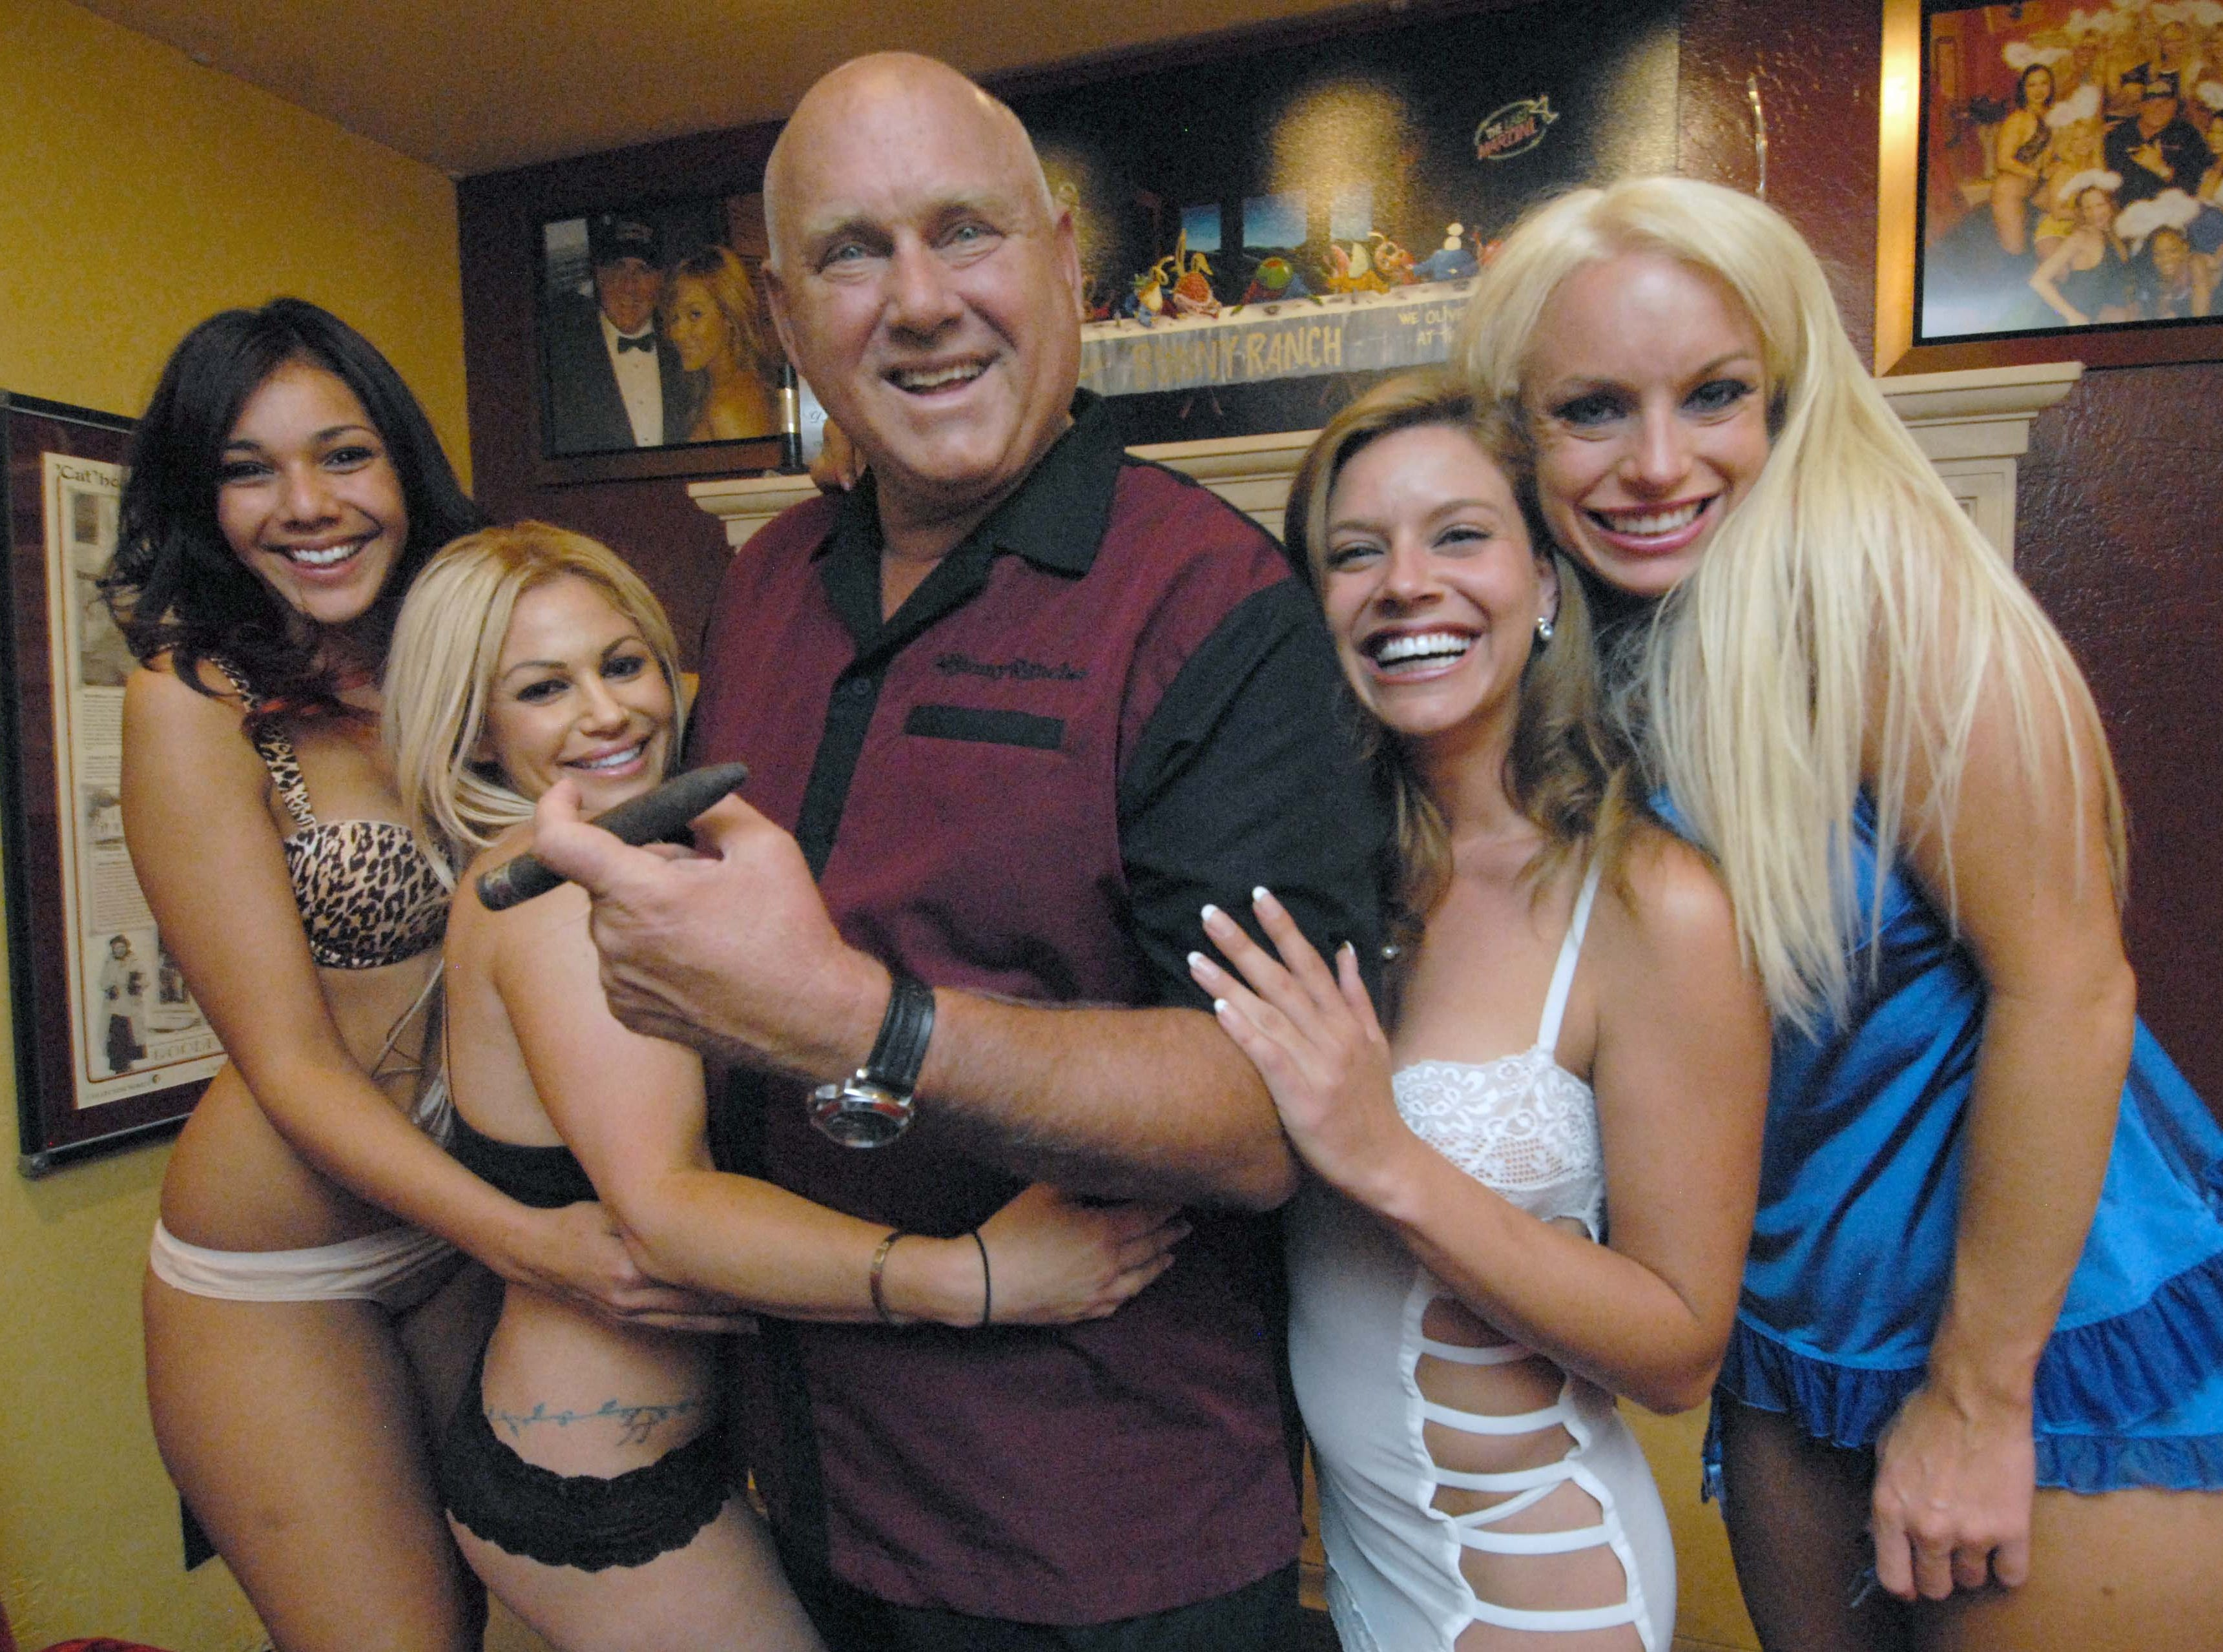 """Published caption: LISA J. TOLDA/RENO GAZETTE-JOURNAL Owner Dennis Hof, with some of the women at the Moonlite Bunny Ranch, said business has slowed at the Mound House brothel because of higher fuel prices.  ooo  Owner Dennis Hof poses Thursday June 27, 2008 with some of his """"working girls"""" in the parlor of his Moonlite BunnyRanch in Mound House, east of Carson City."""